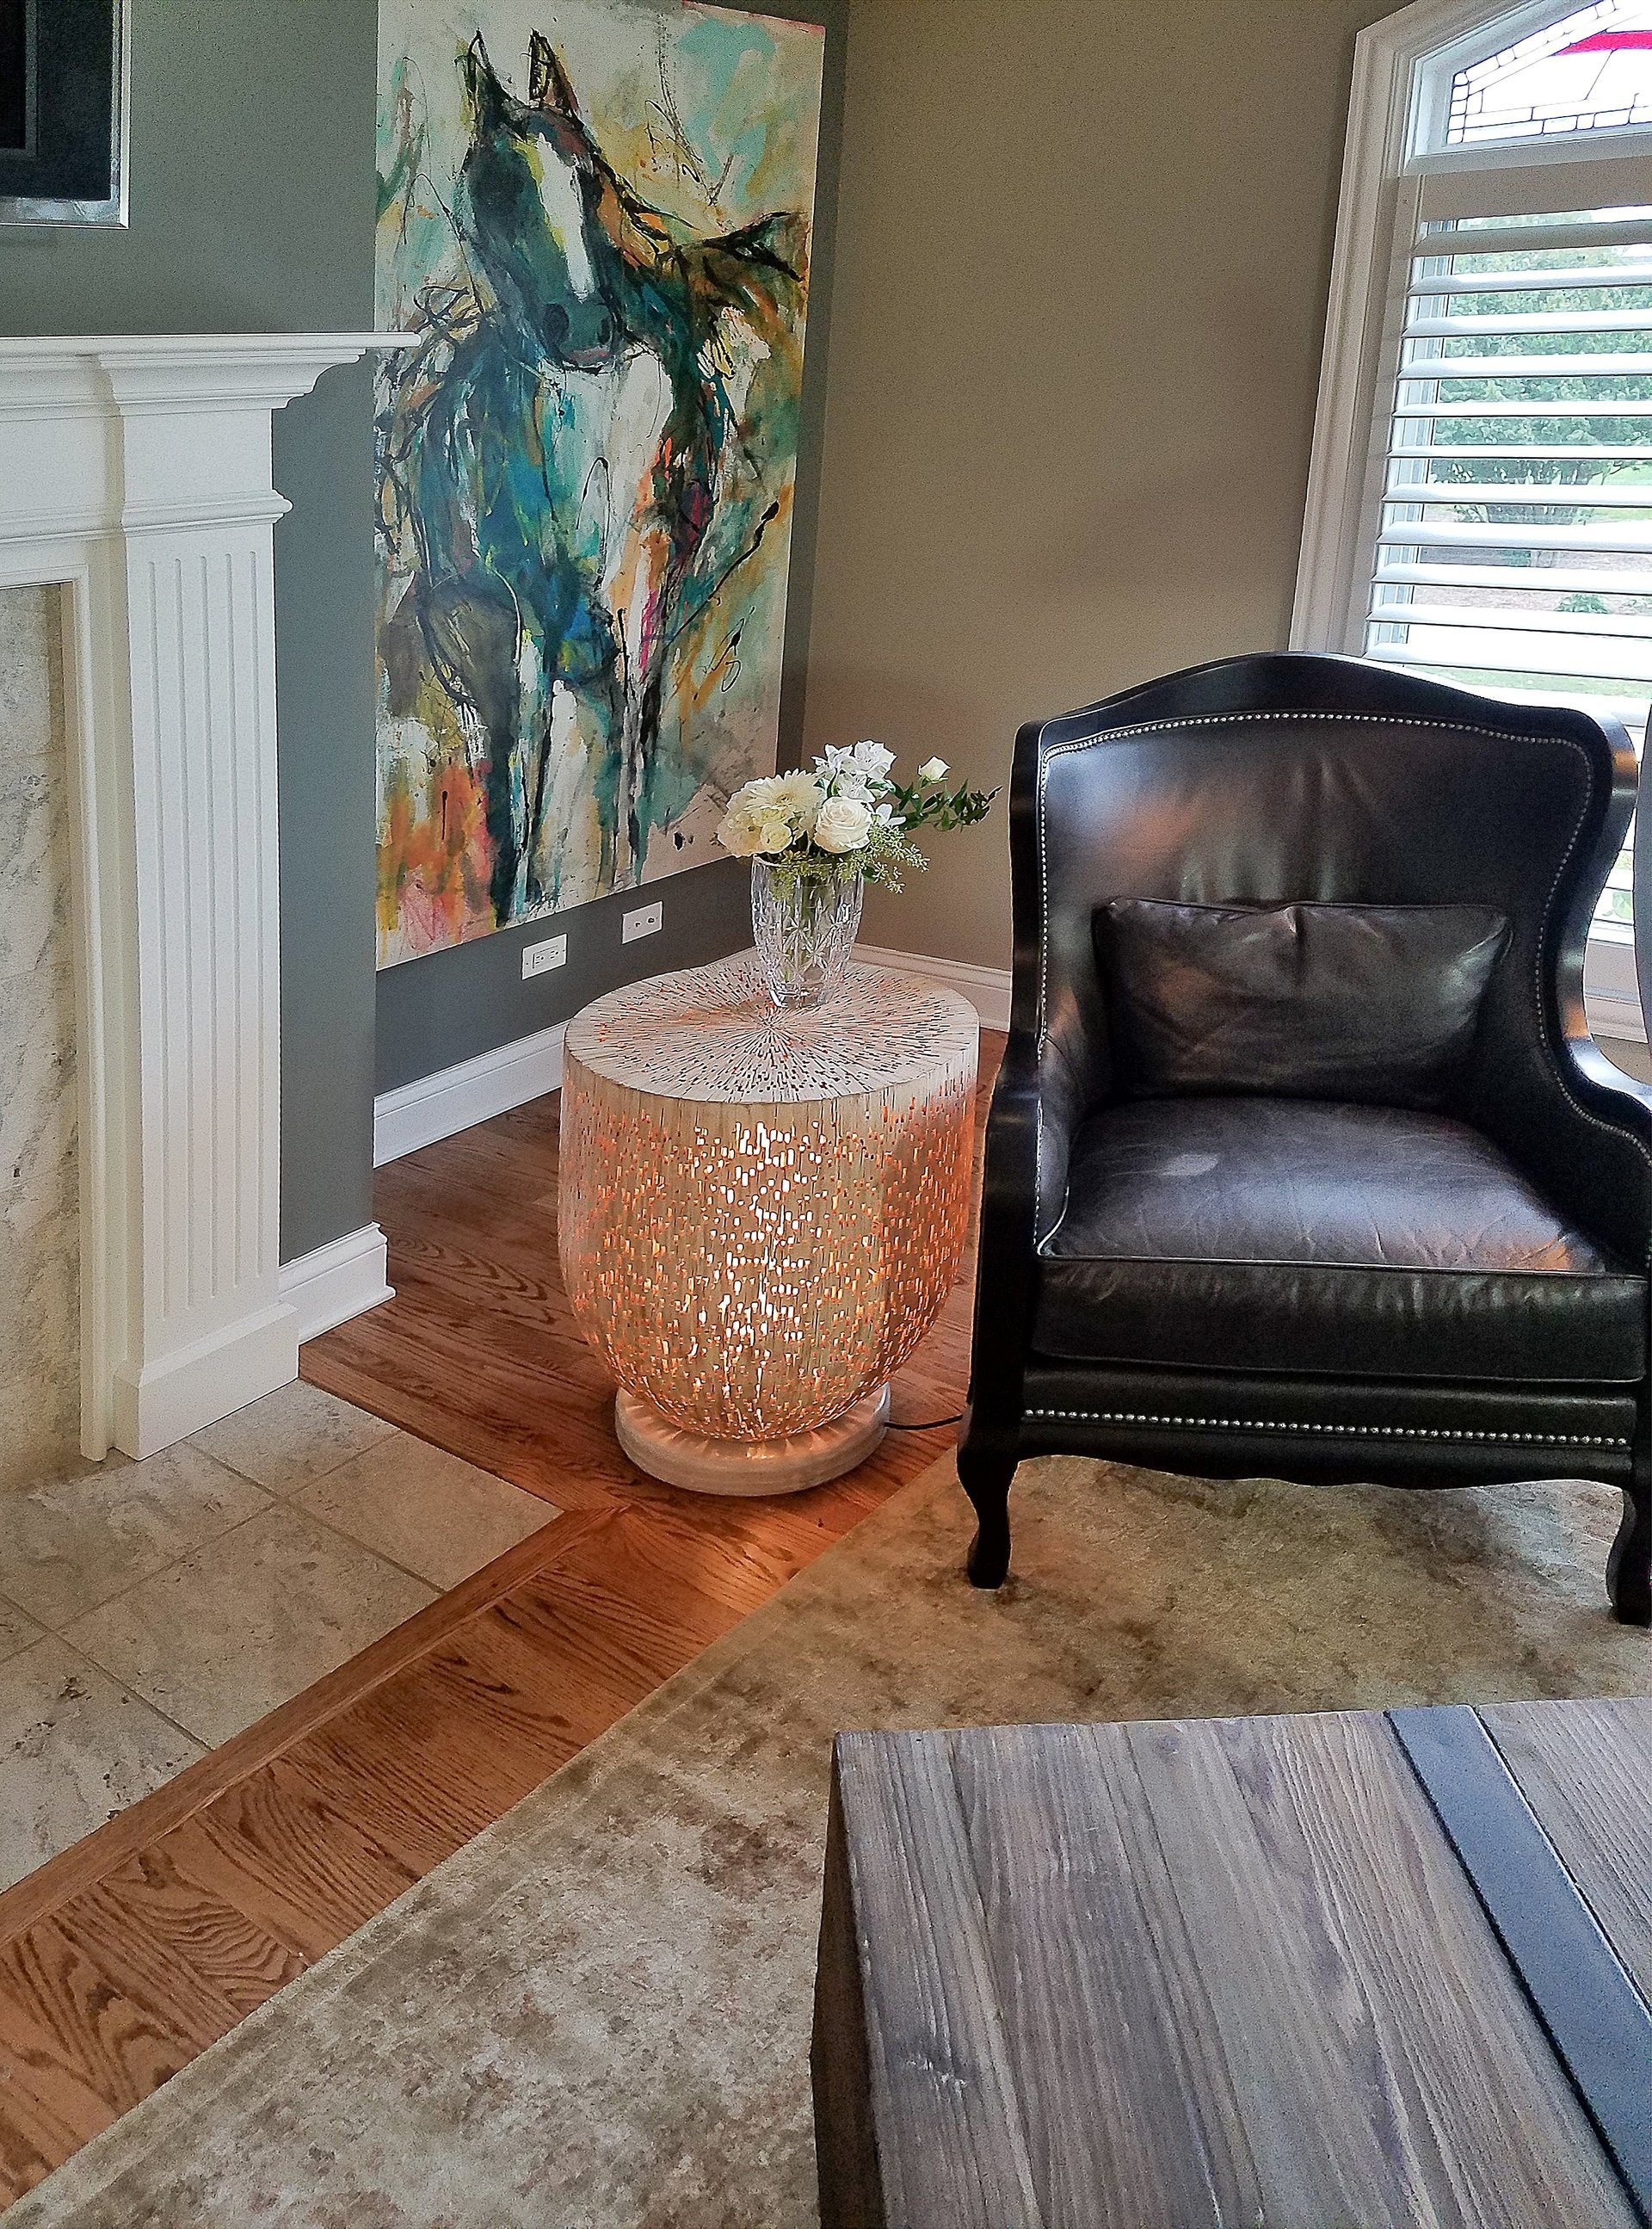 transitional living room decor, abstract horse artwork, small side table